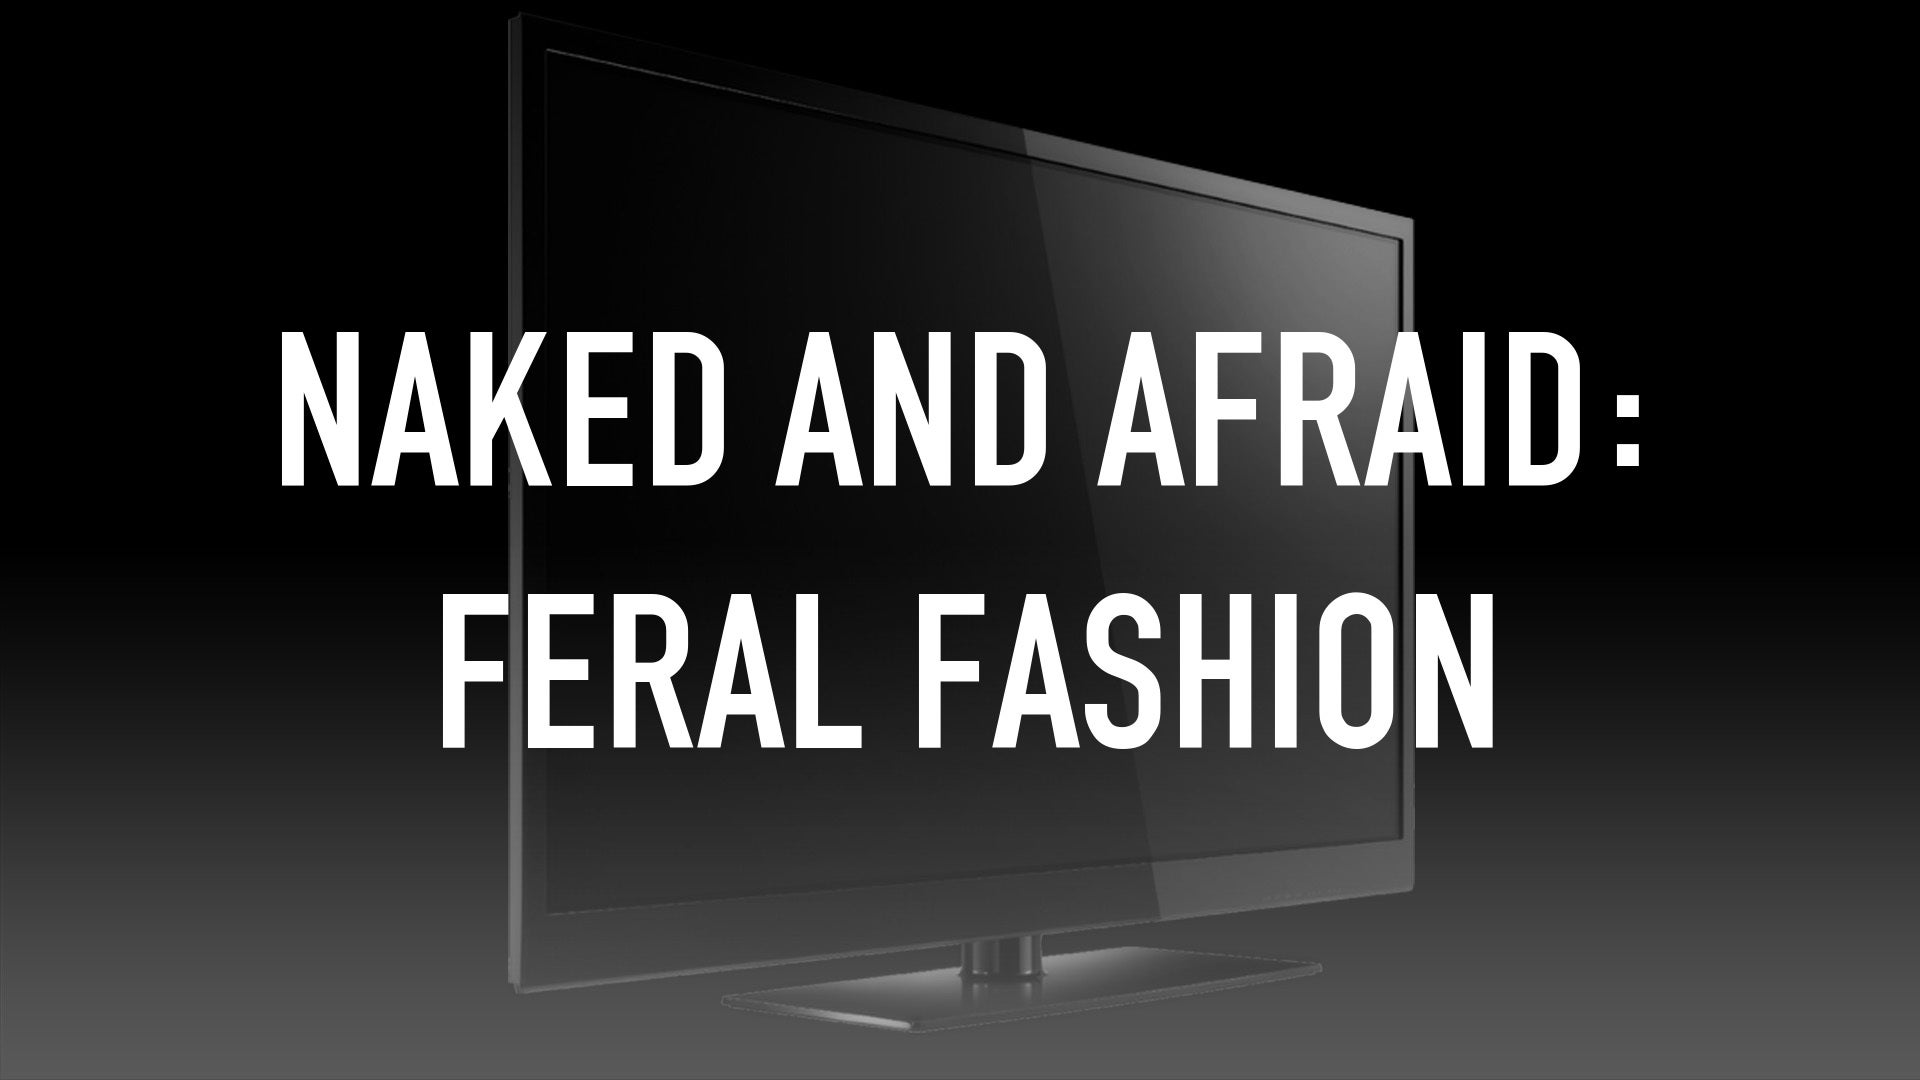 Naked And Afraid: Feral Fashion